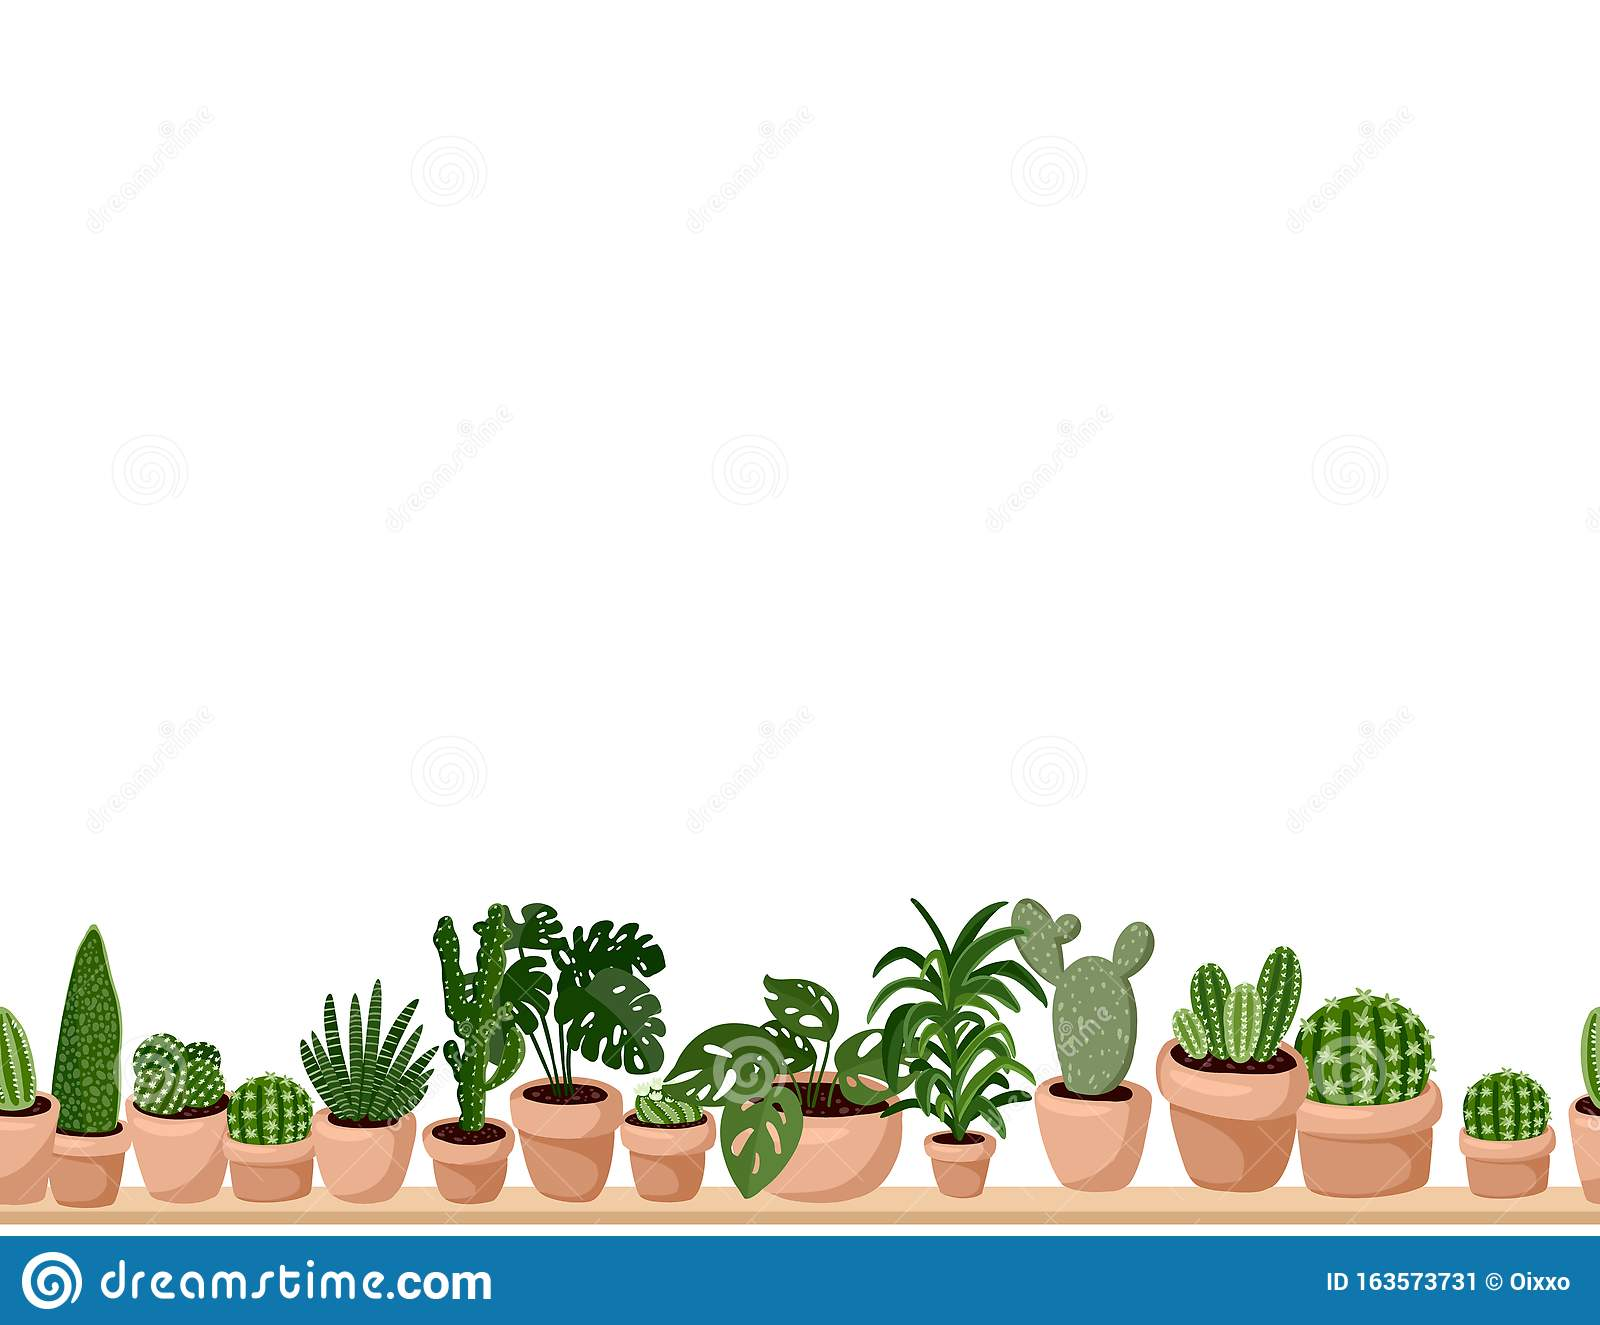 Cute Set Of Hygge Potted Succulent Plants Seamless Pattern Letter Format Lagom Scandinavian Style Decoration Background Texture Stock Vector Illustration Of Gardening Cacti 163573731